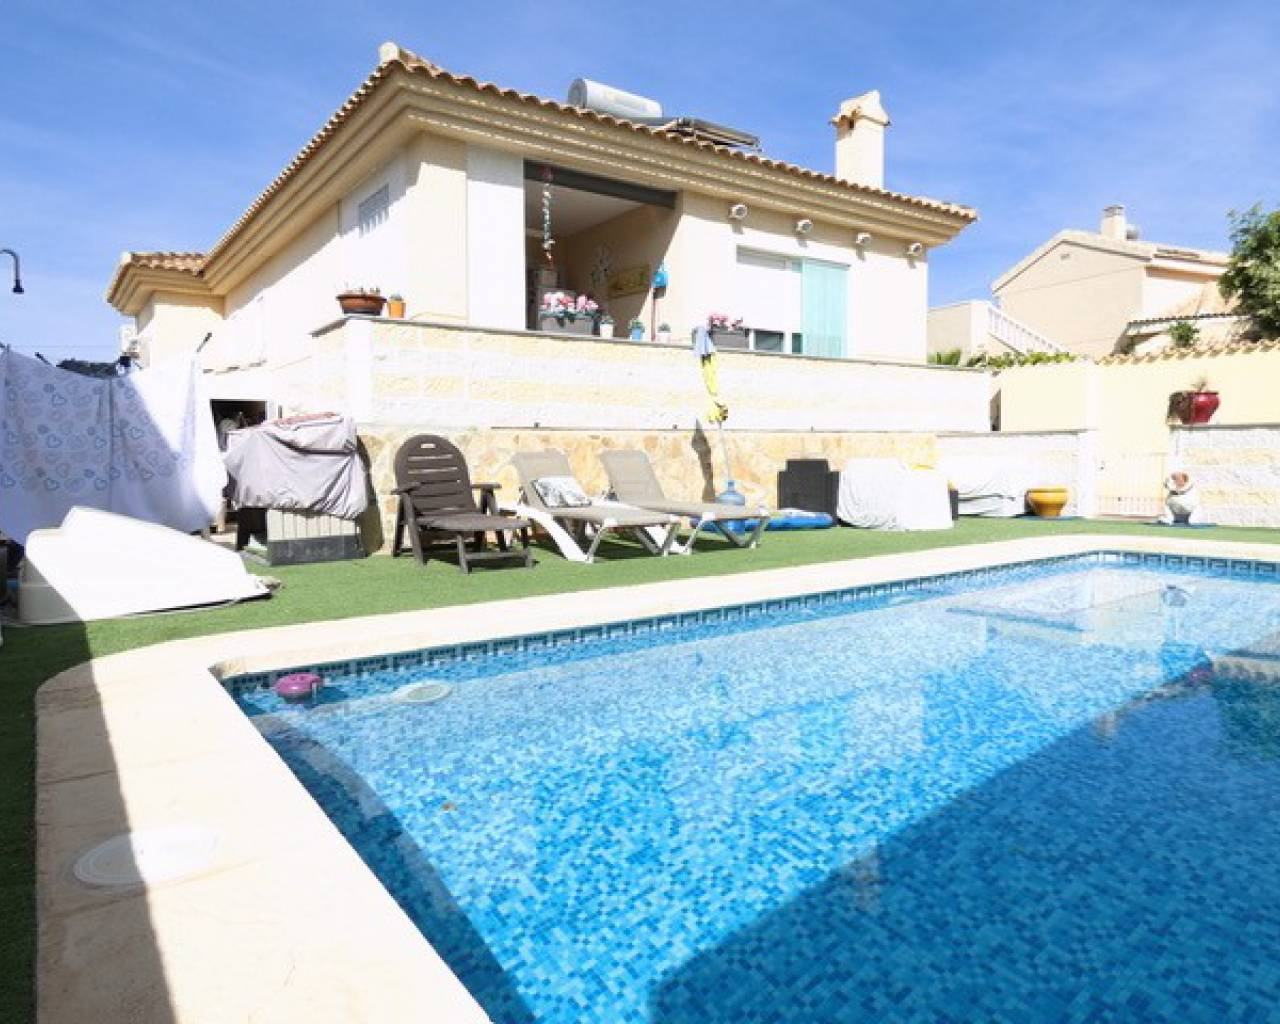 Detached Villa - Sale - Ciudad Quesada - Atalaya (Quesada)